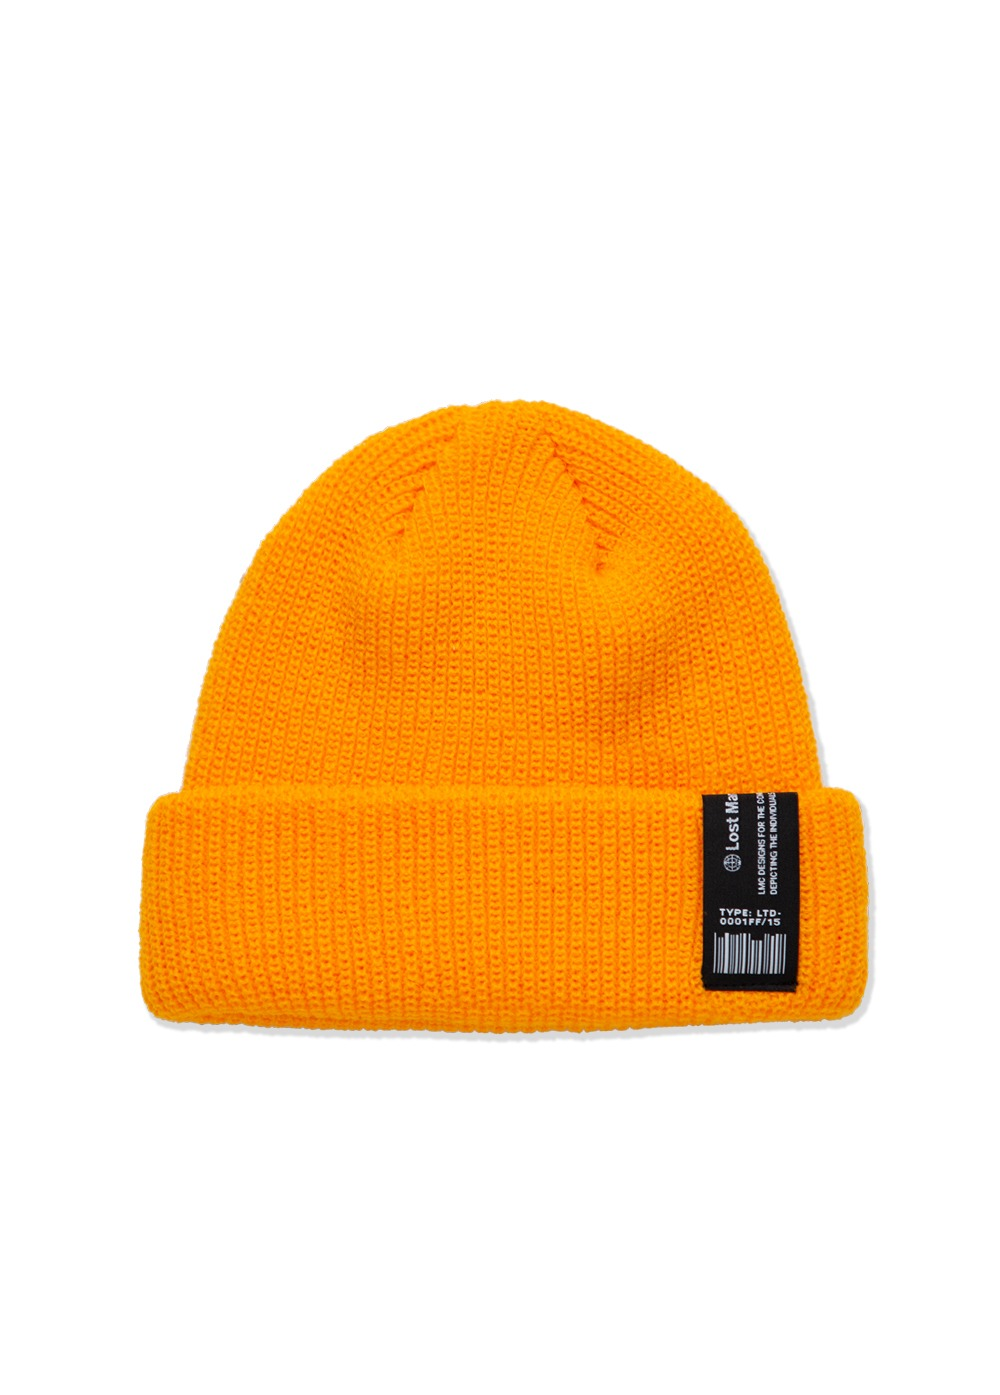 LMC LABEL SHORT BEANIE yellow